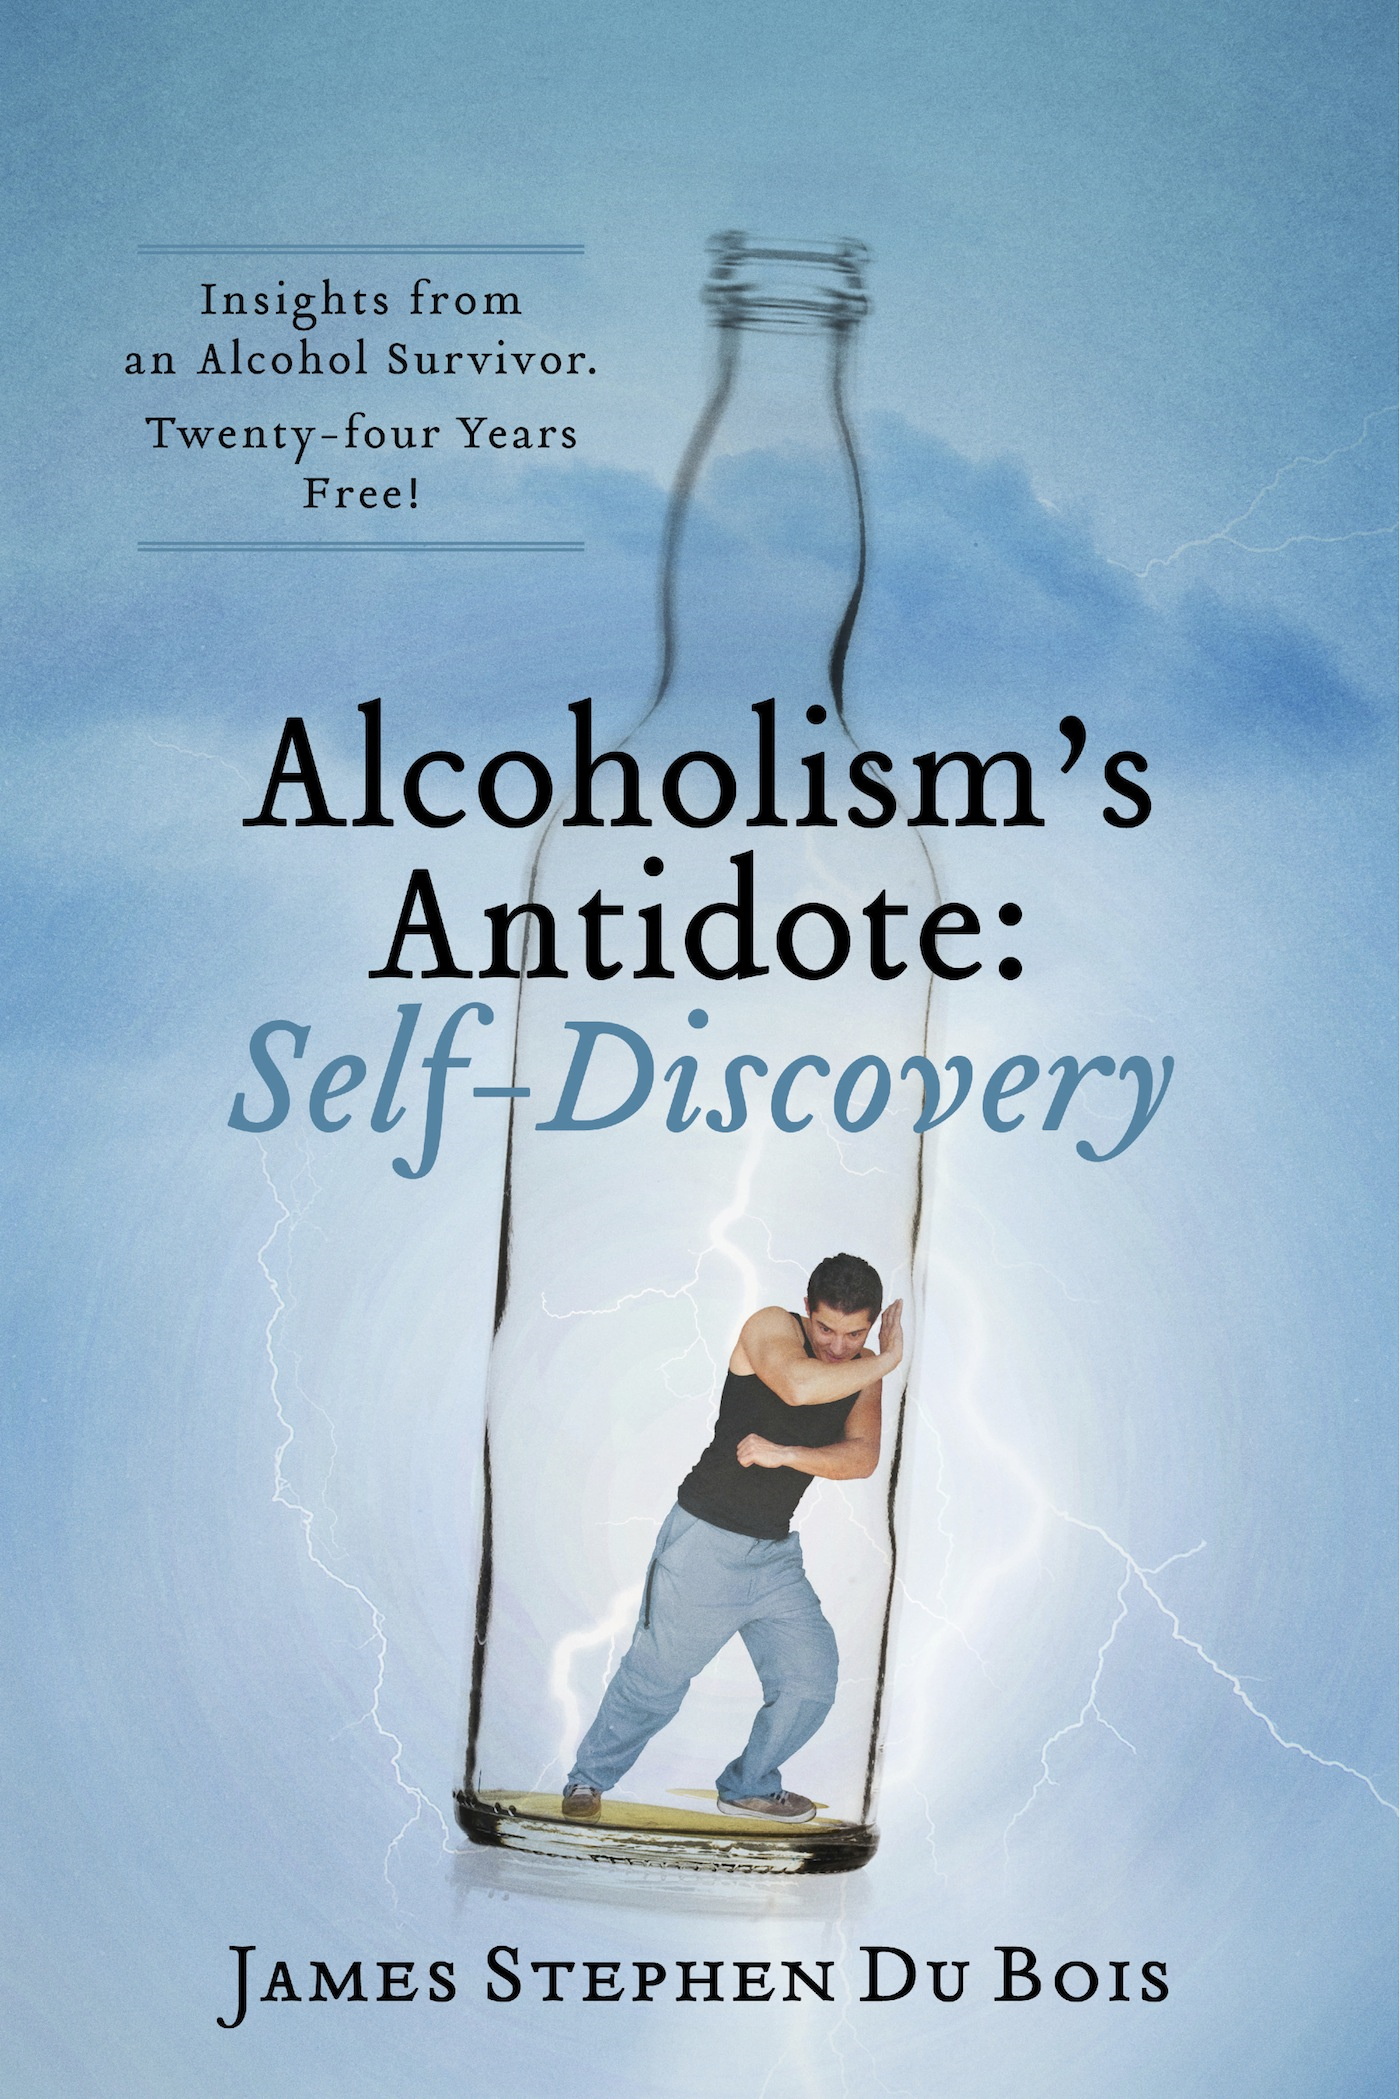 Alcoholism's Antidote:  Self-Discovery: Insights from an Alcohol Survivor. Twenty-four Years Free! By: James  Stephen  Du Bois